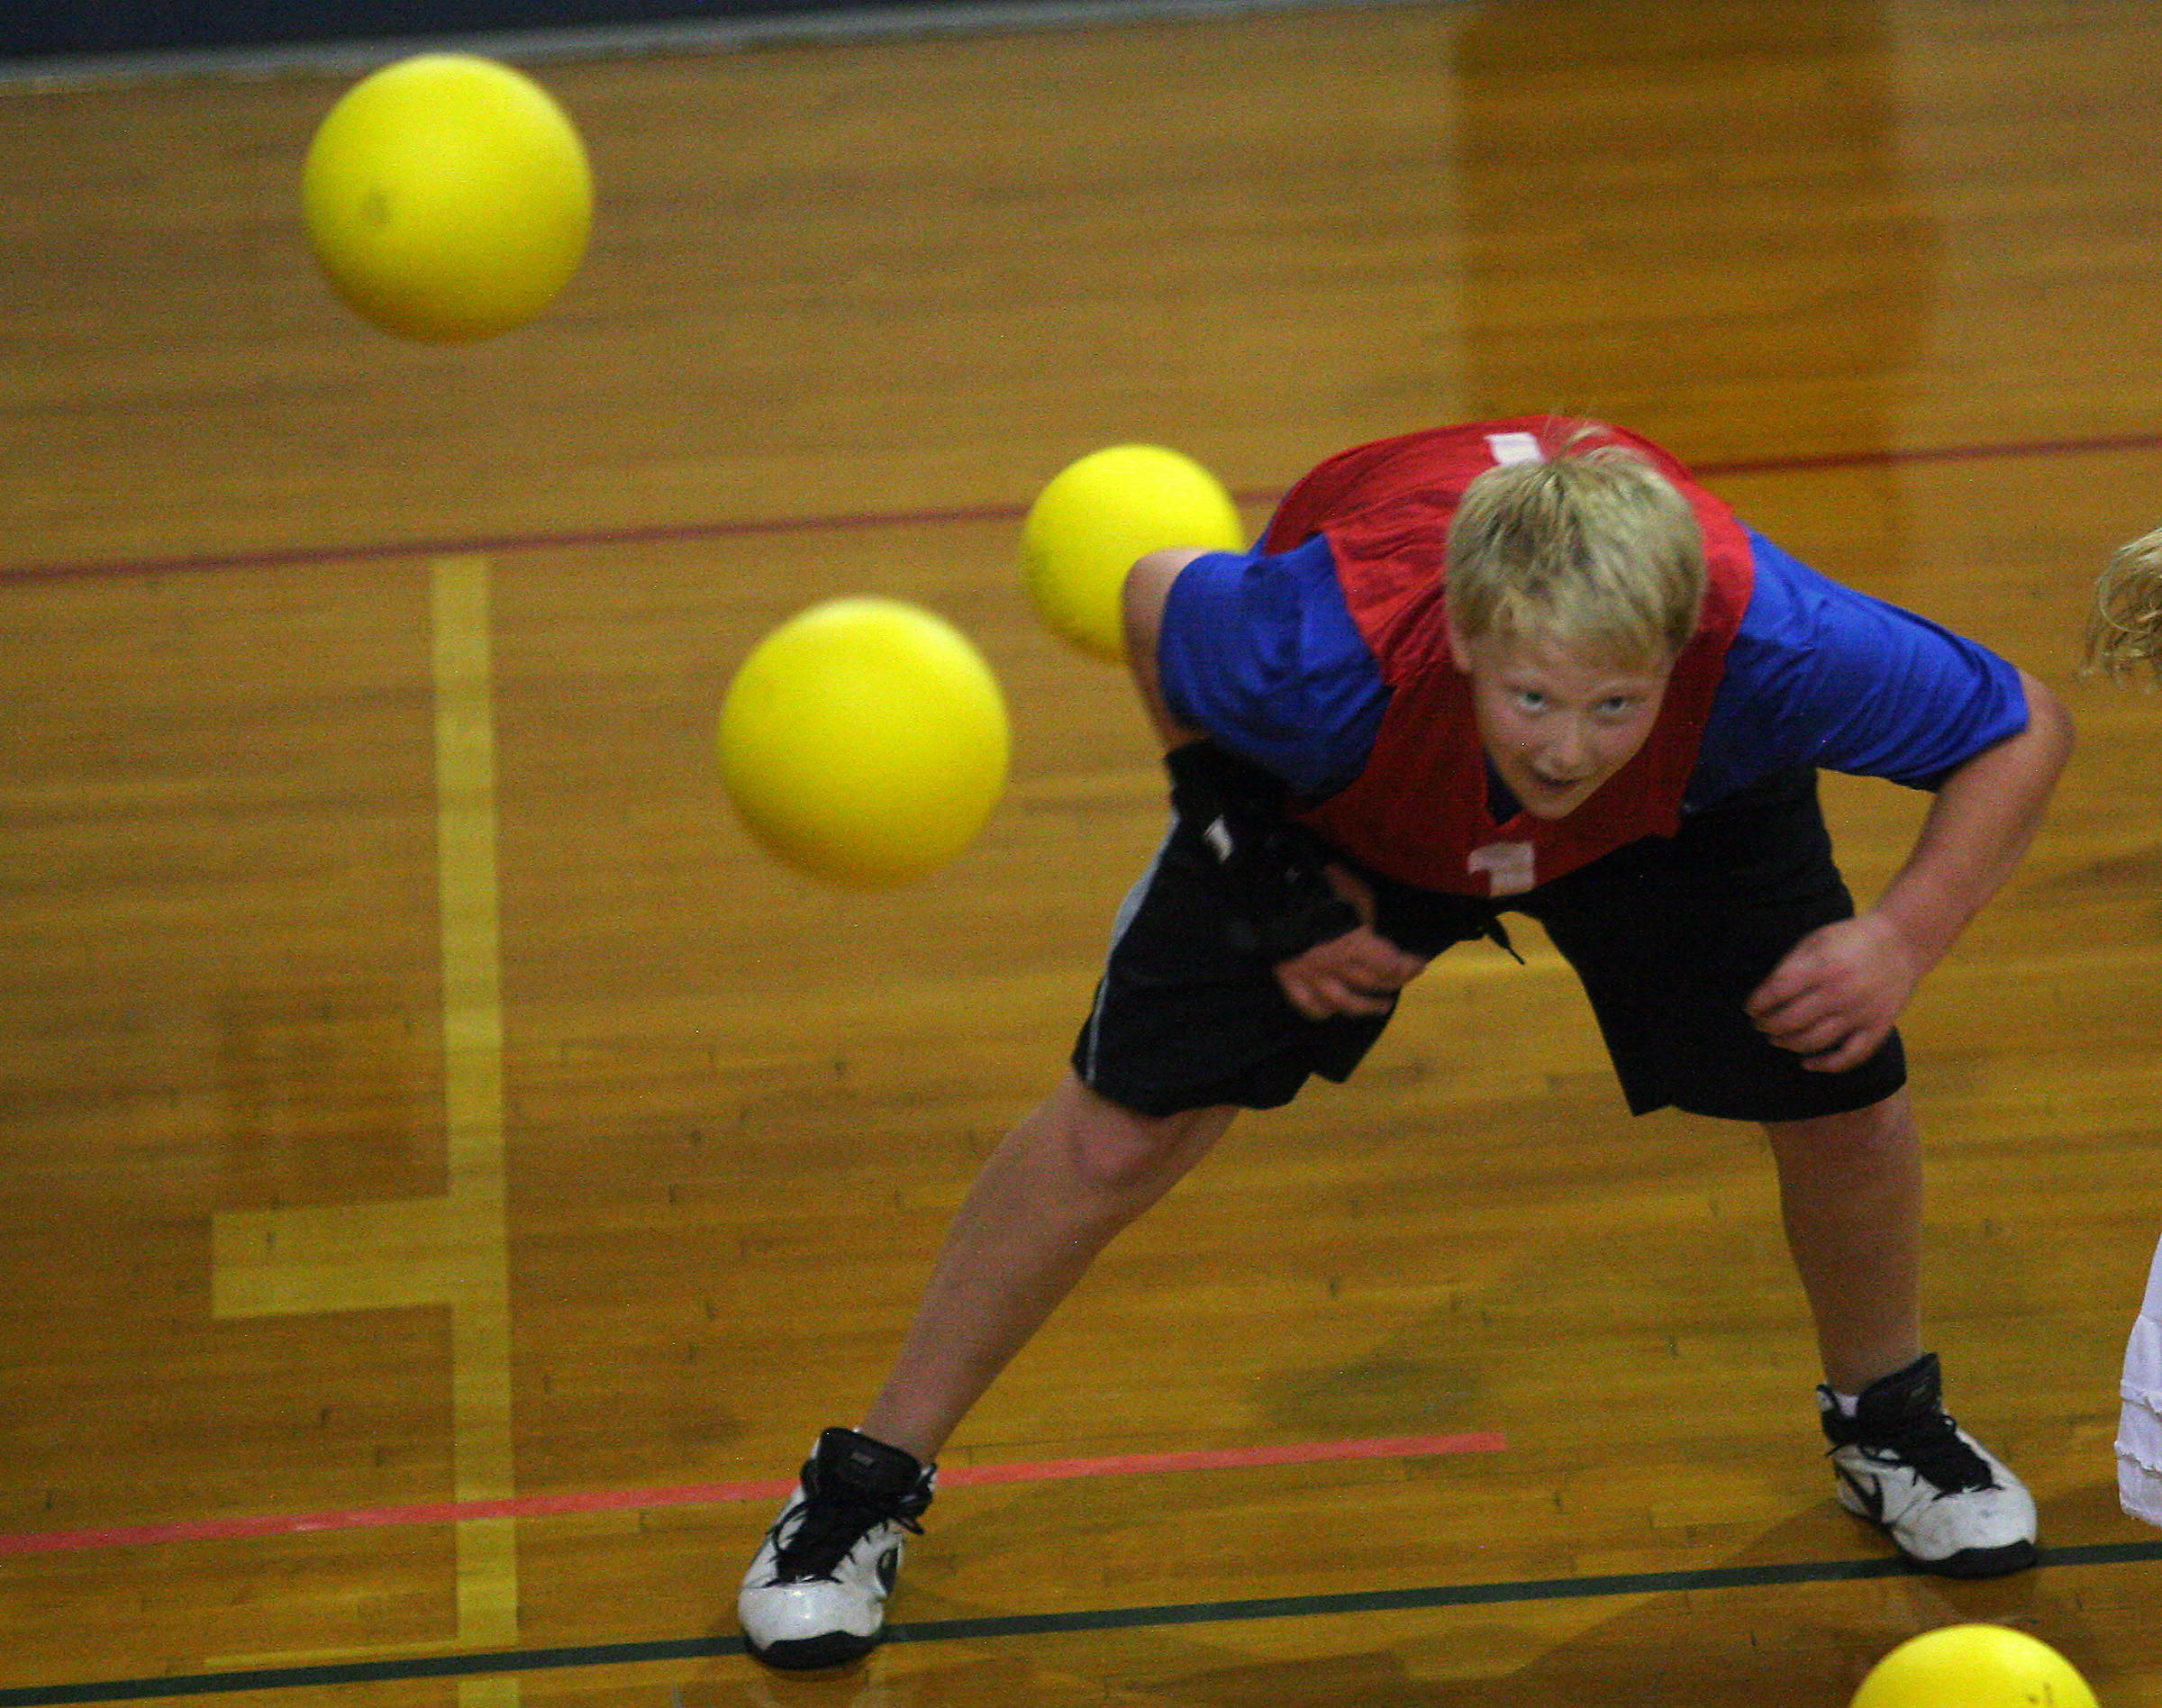 dodgeball at sports Camp